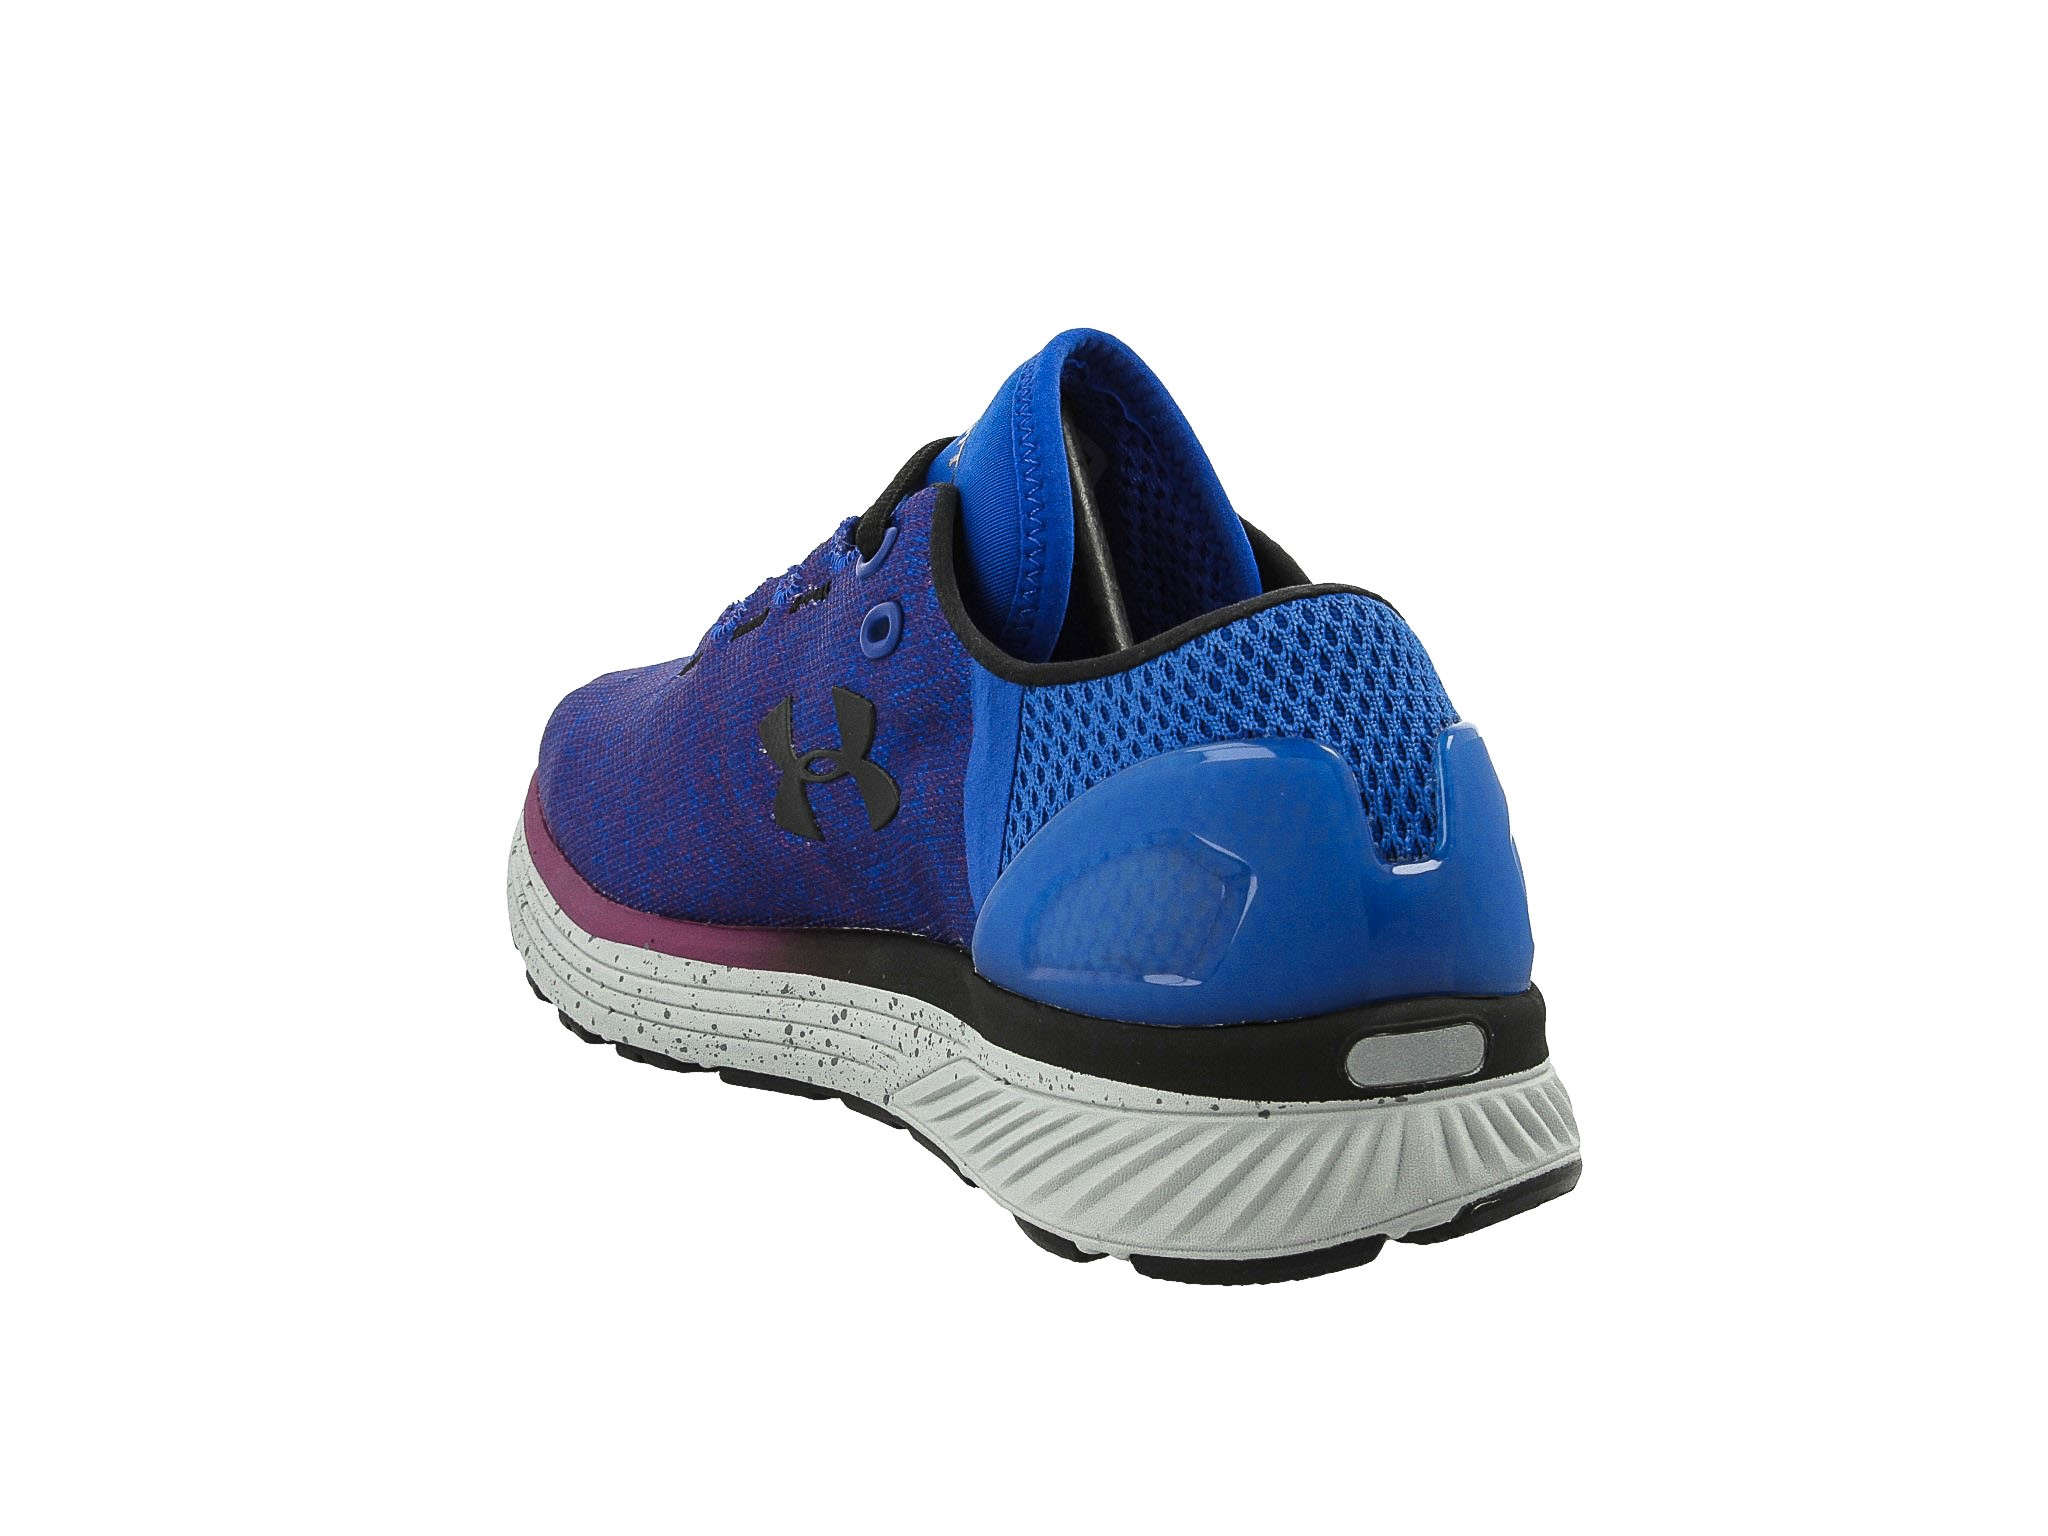 detailed look 5349c 2dd48 Under Armour